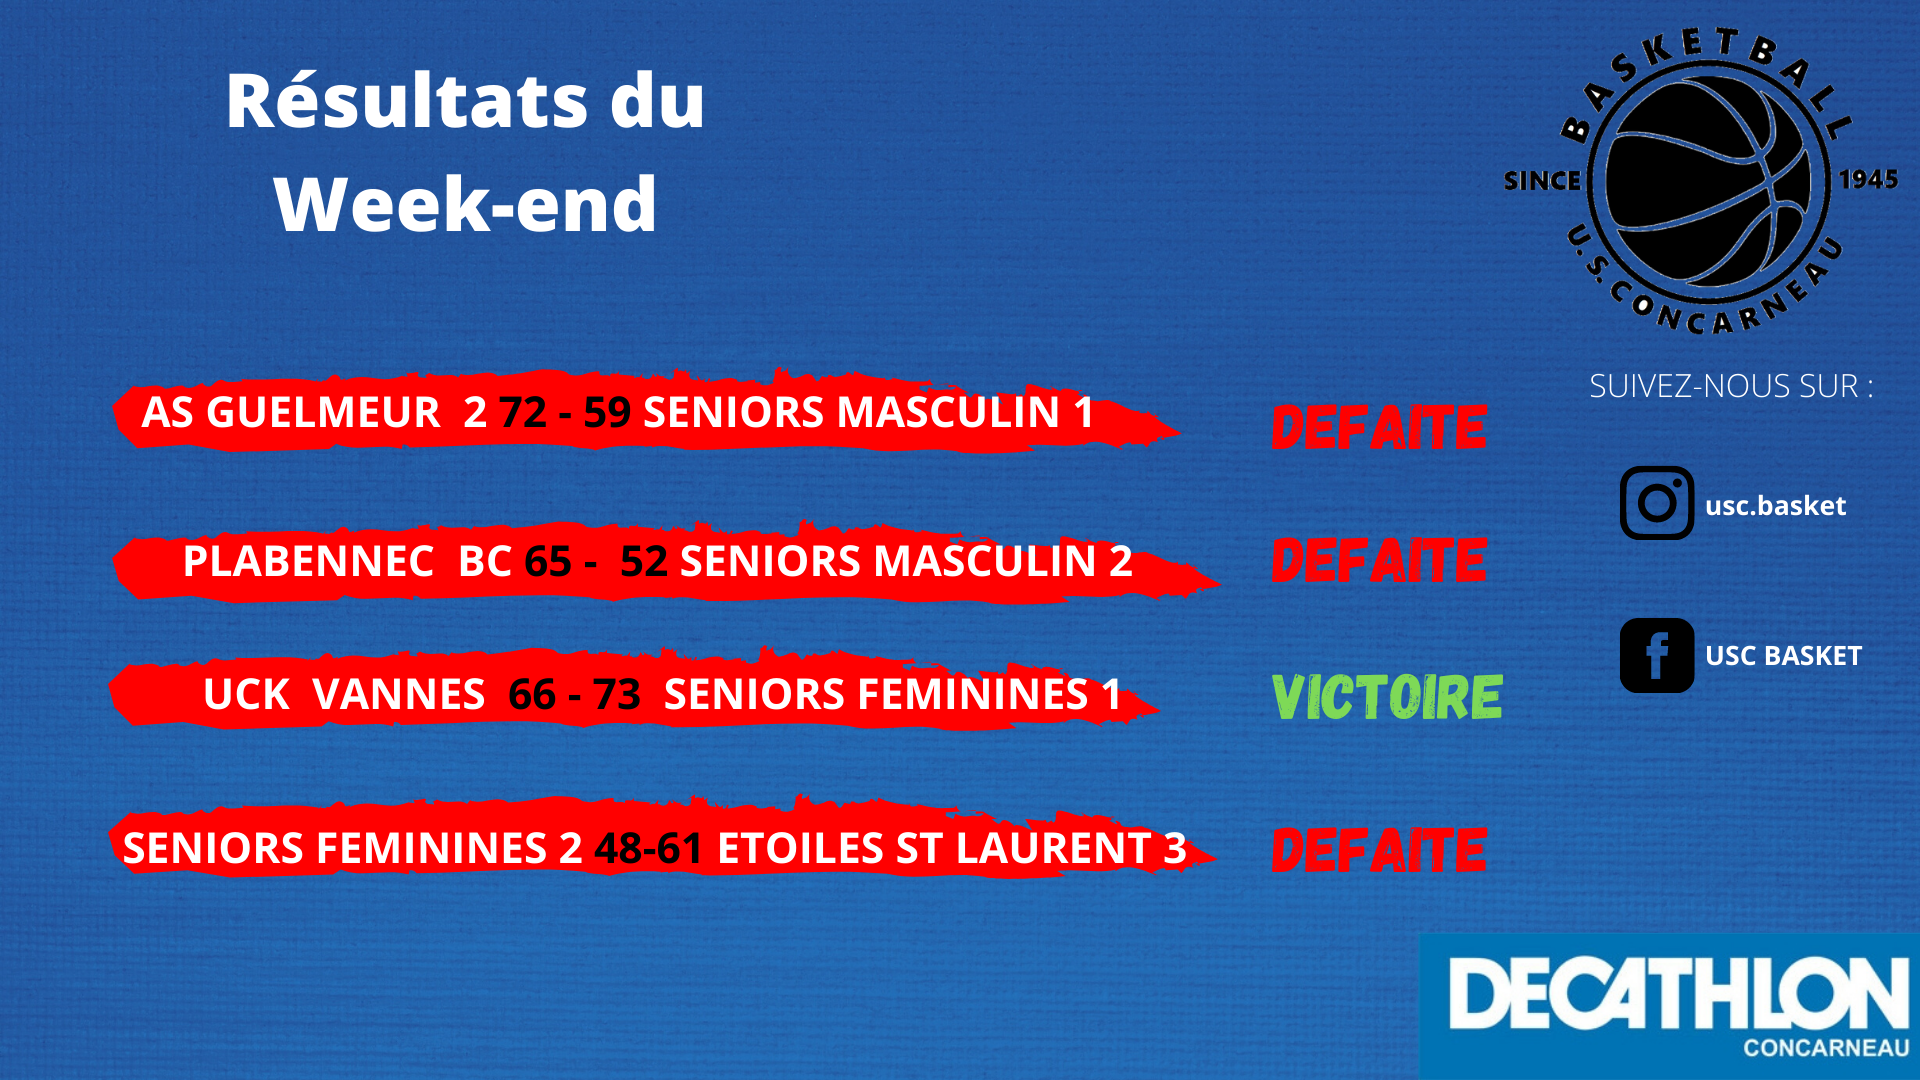 Résultats du Week-end 17/18